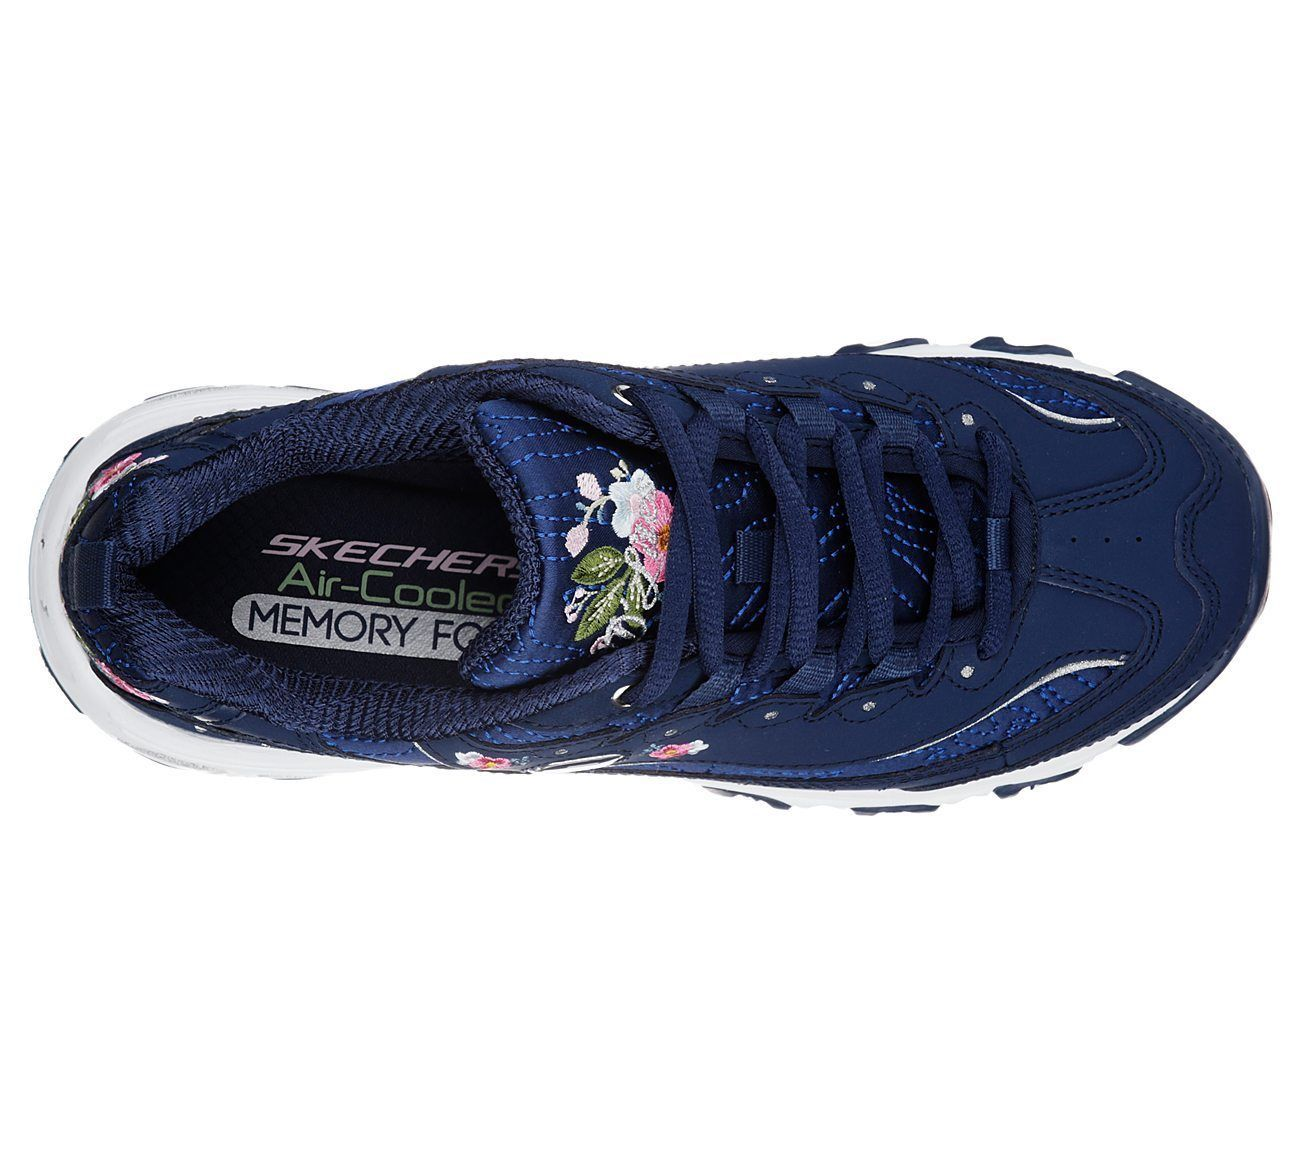 11977 Navy Dlites Skechers Shoes Women Sporty Casual Comfort Memory Foam Floral